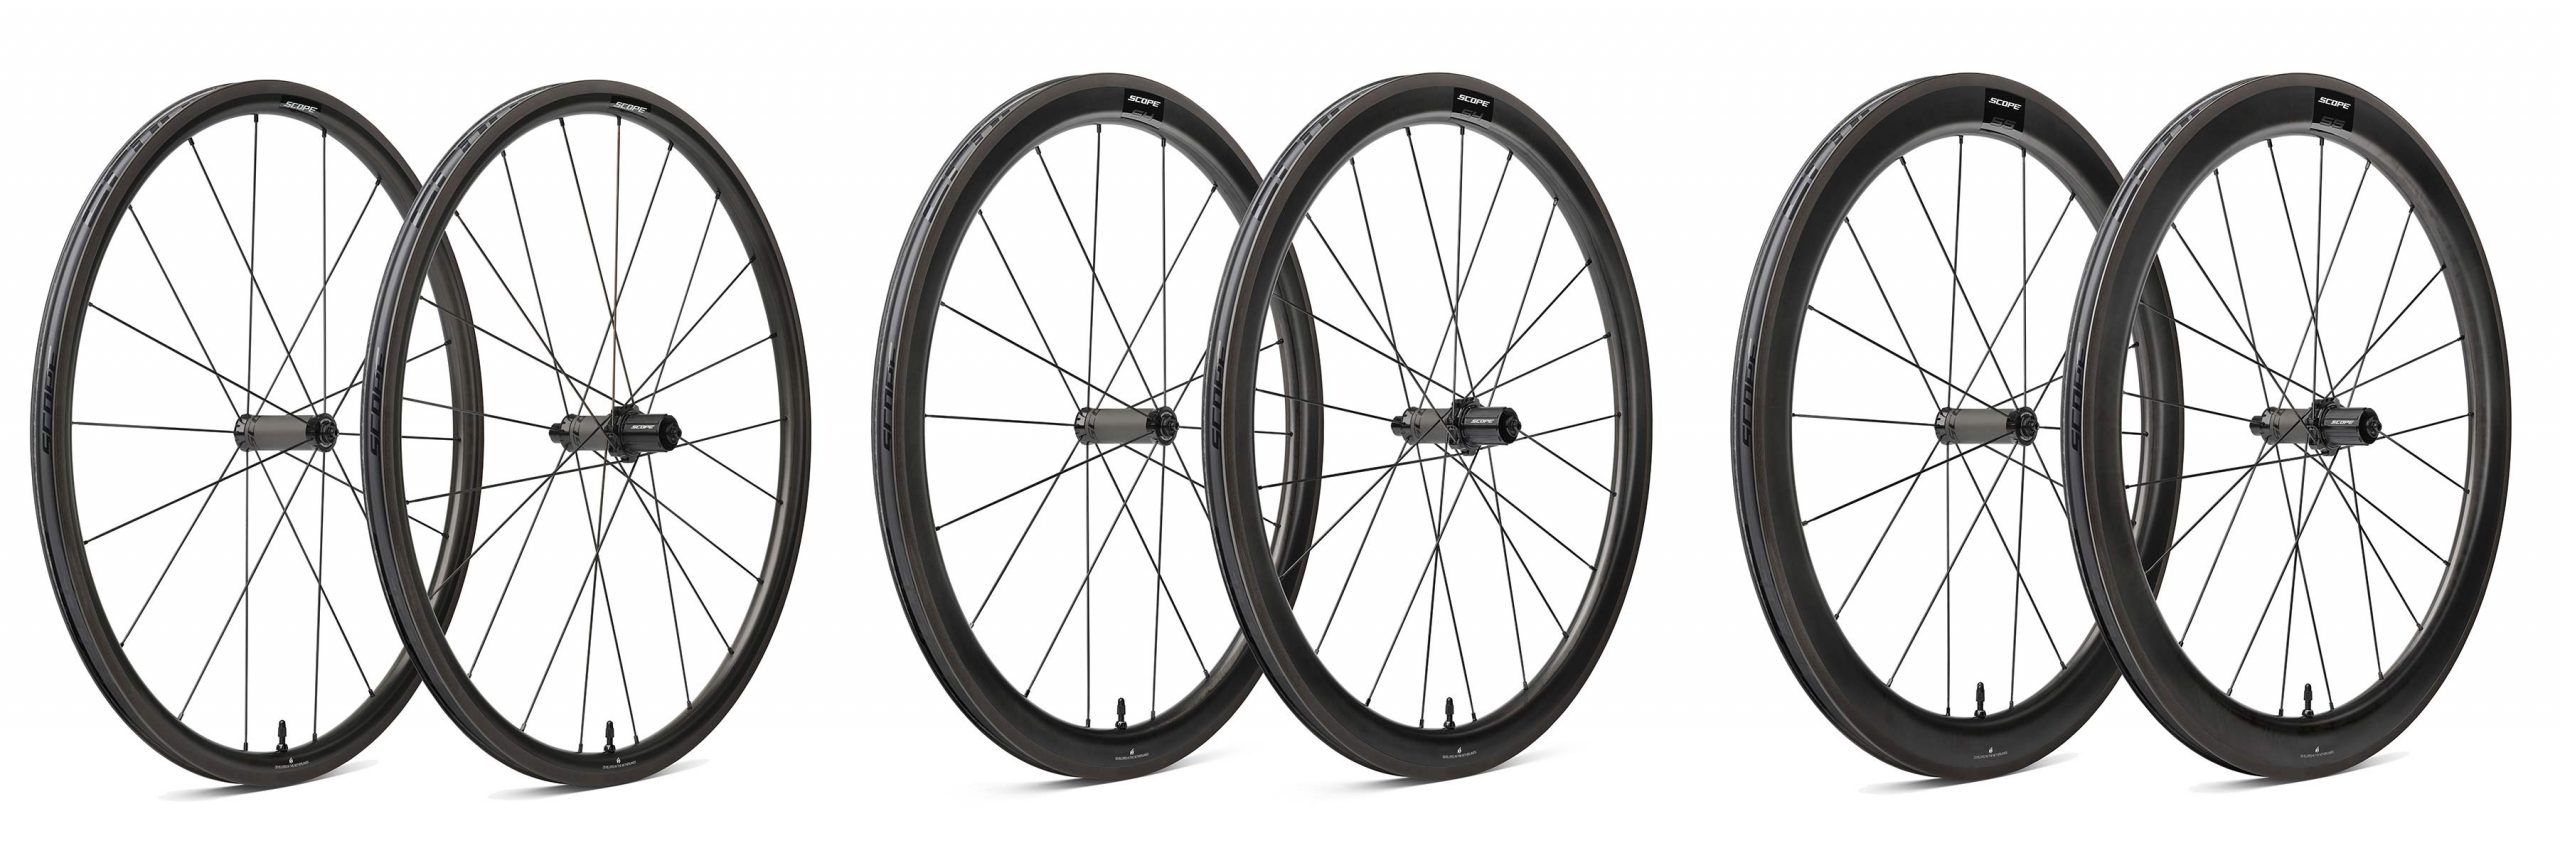 Scope Sport S3 S4 S5 affordable carbon tubeless road wheels, 998€ for rim brakes